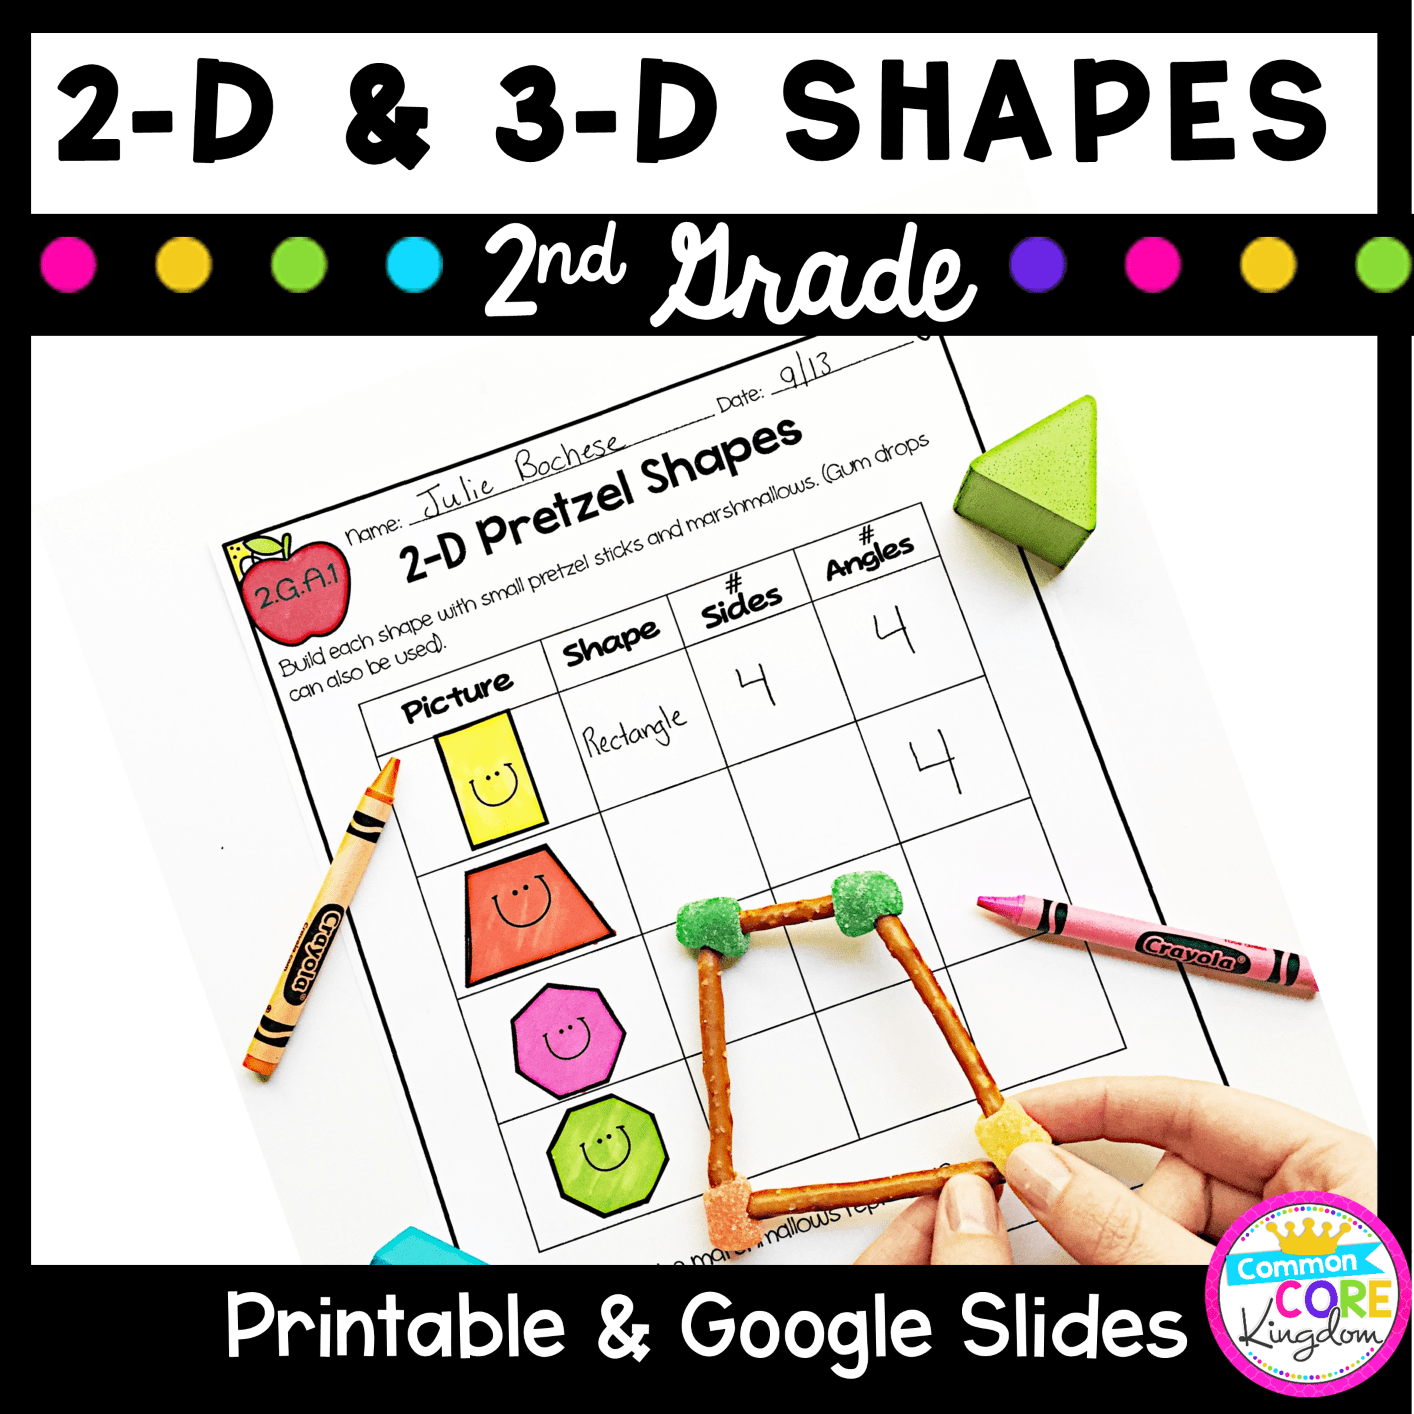 Geometry 2-D \u0026 3-D Shapes 2nd Grade CC 2.GA.1 - Google Slides Distance  Learning Pack   Common Core Kingdom [ 1414 x 1414 Pixel ]